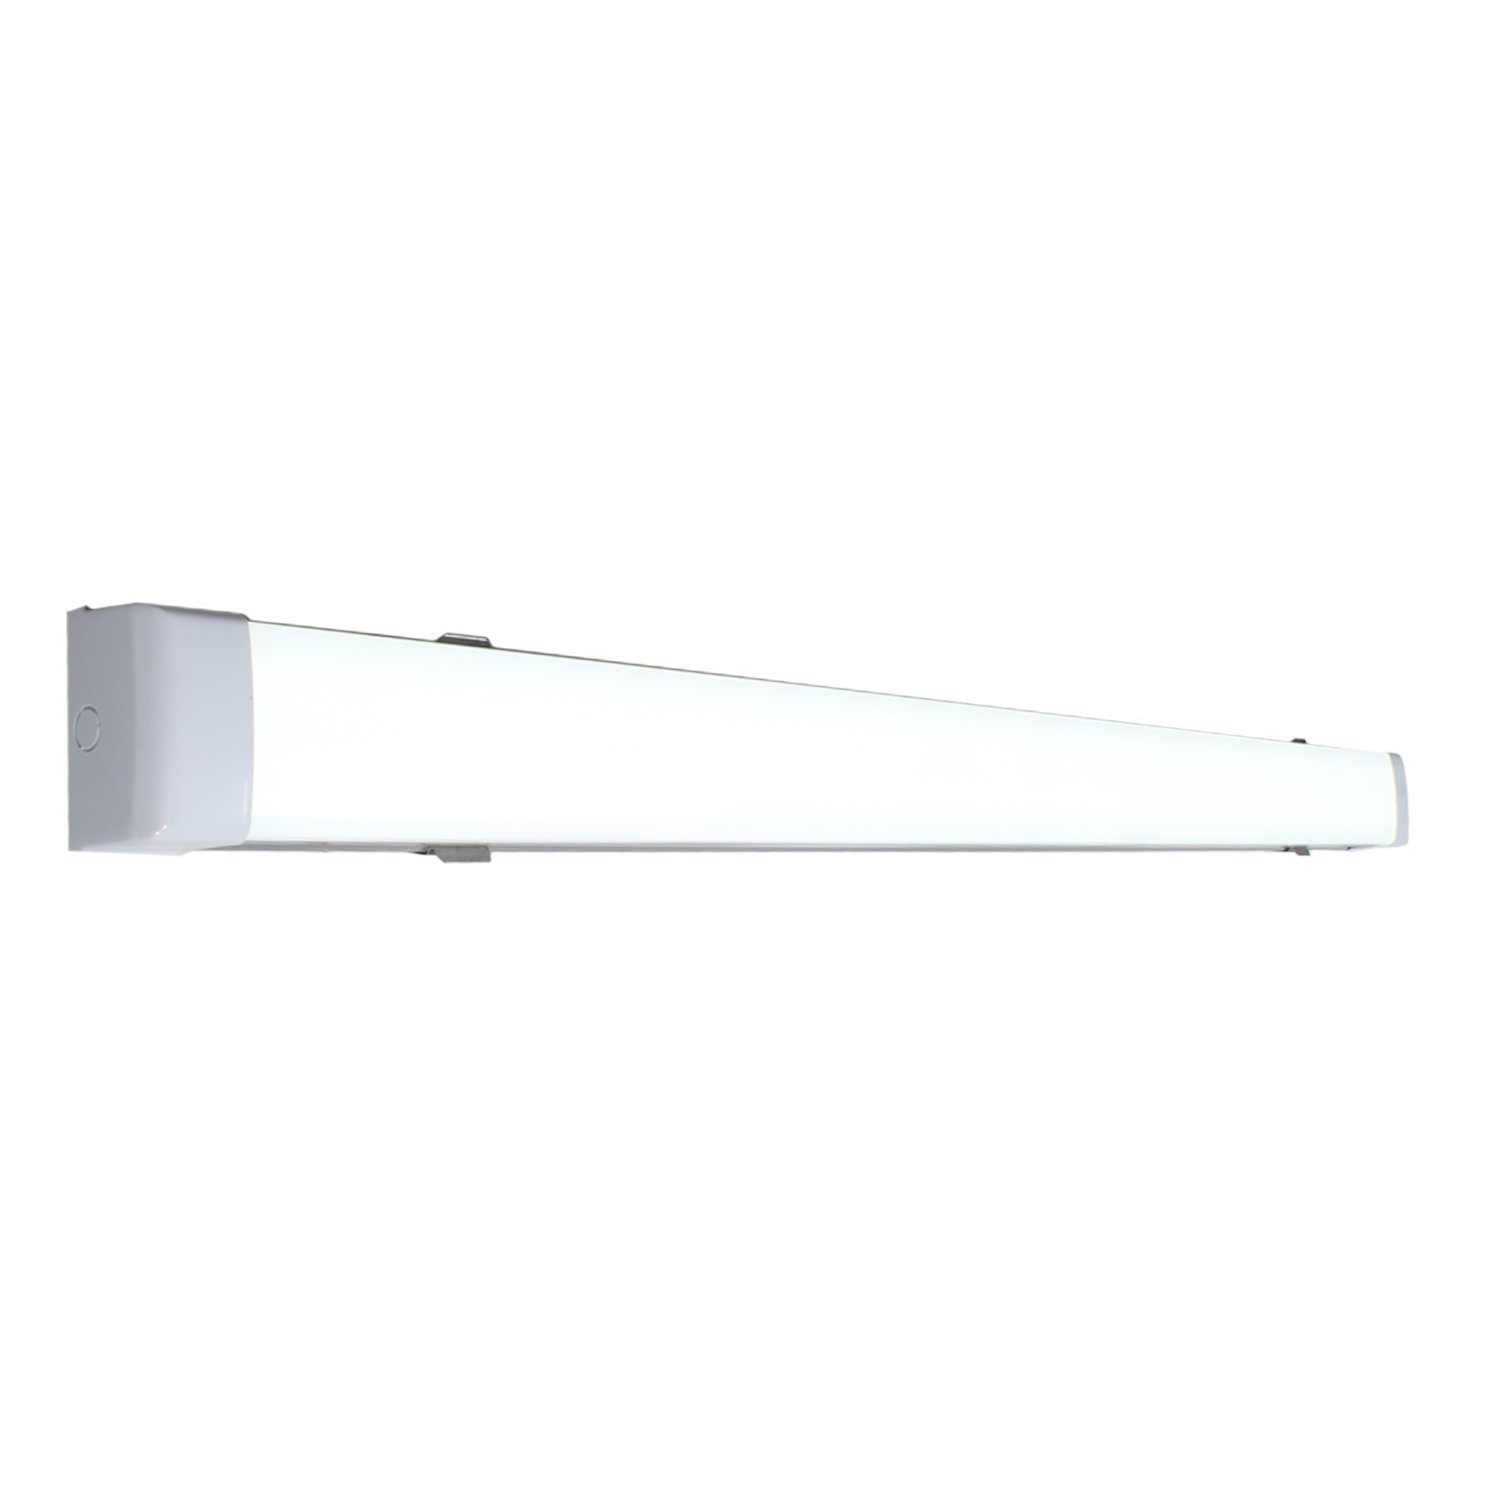 LEEKI - LED Bar Lamp - Modern Contemporary 35 Inches 6500K Cool White - 2100 Lumens 28W - Great light for bathrooms Kitchen and others